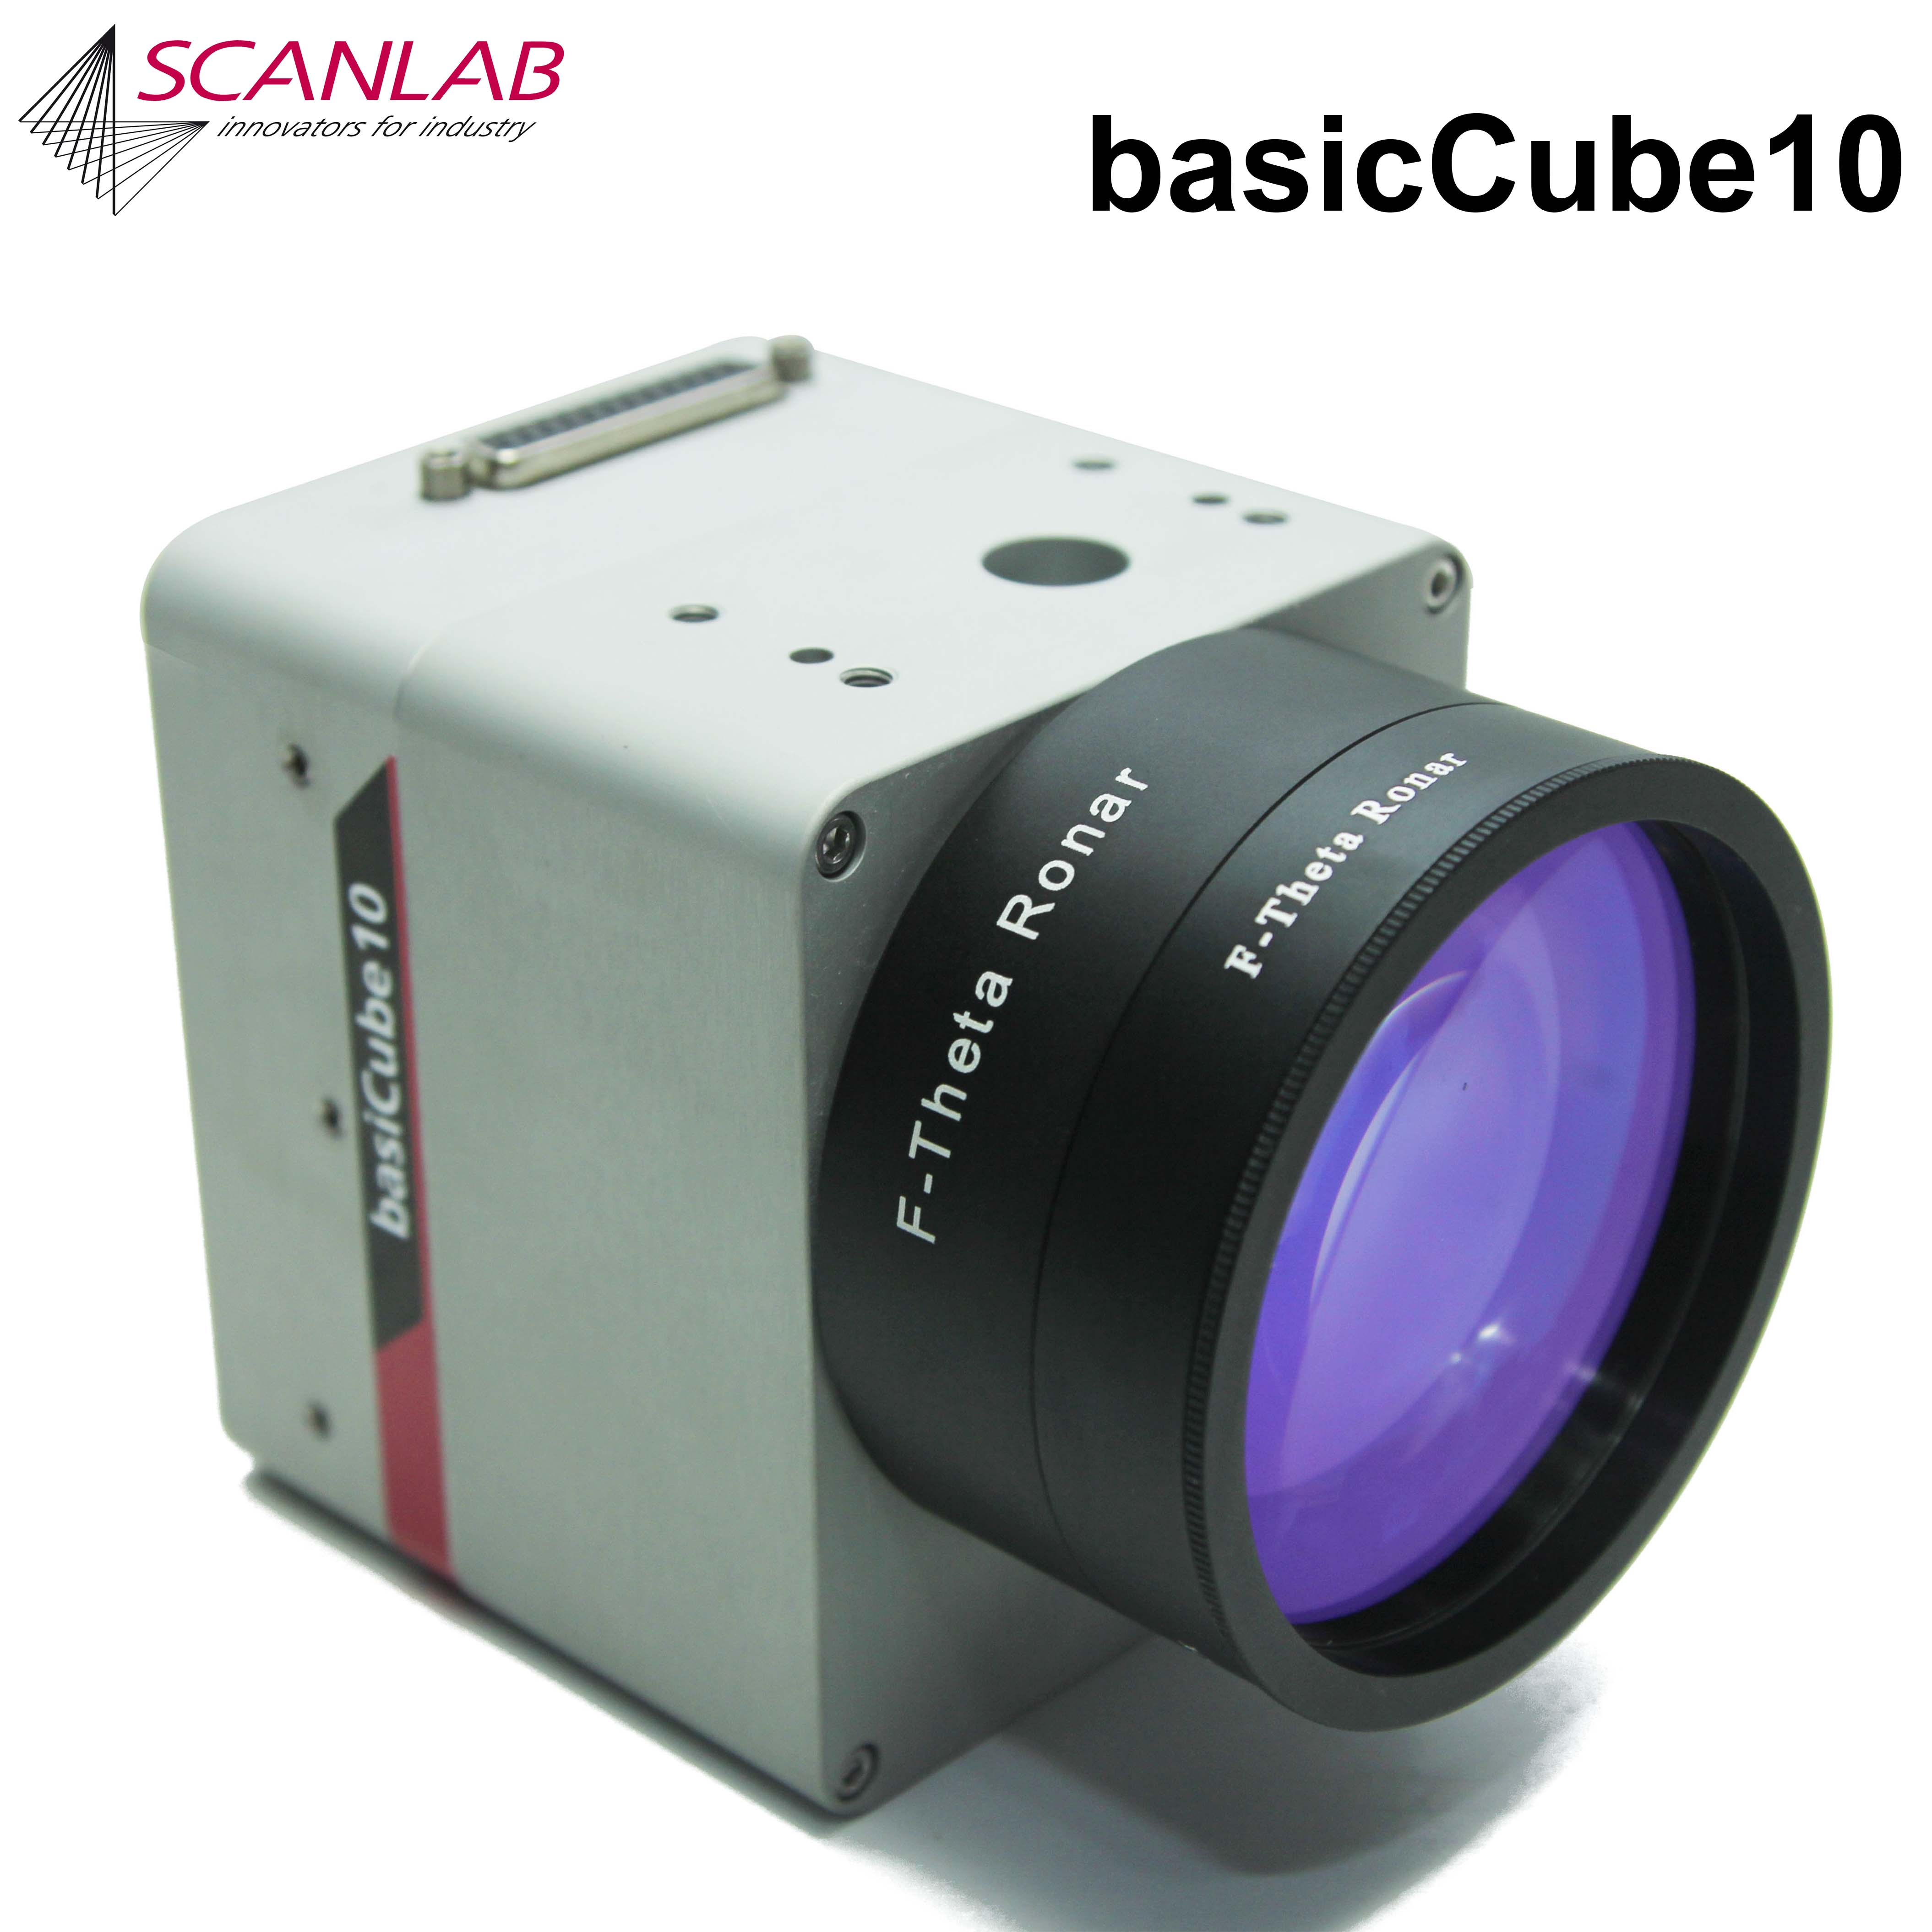 SCANLAB BasiCube 10 Scan Head Galvo Head Made In Germany